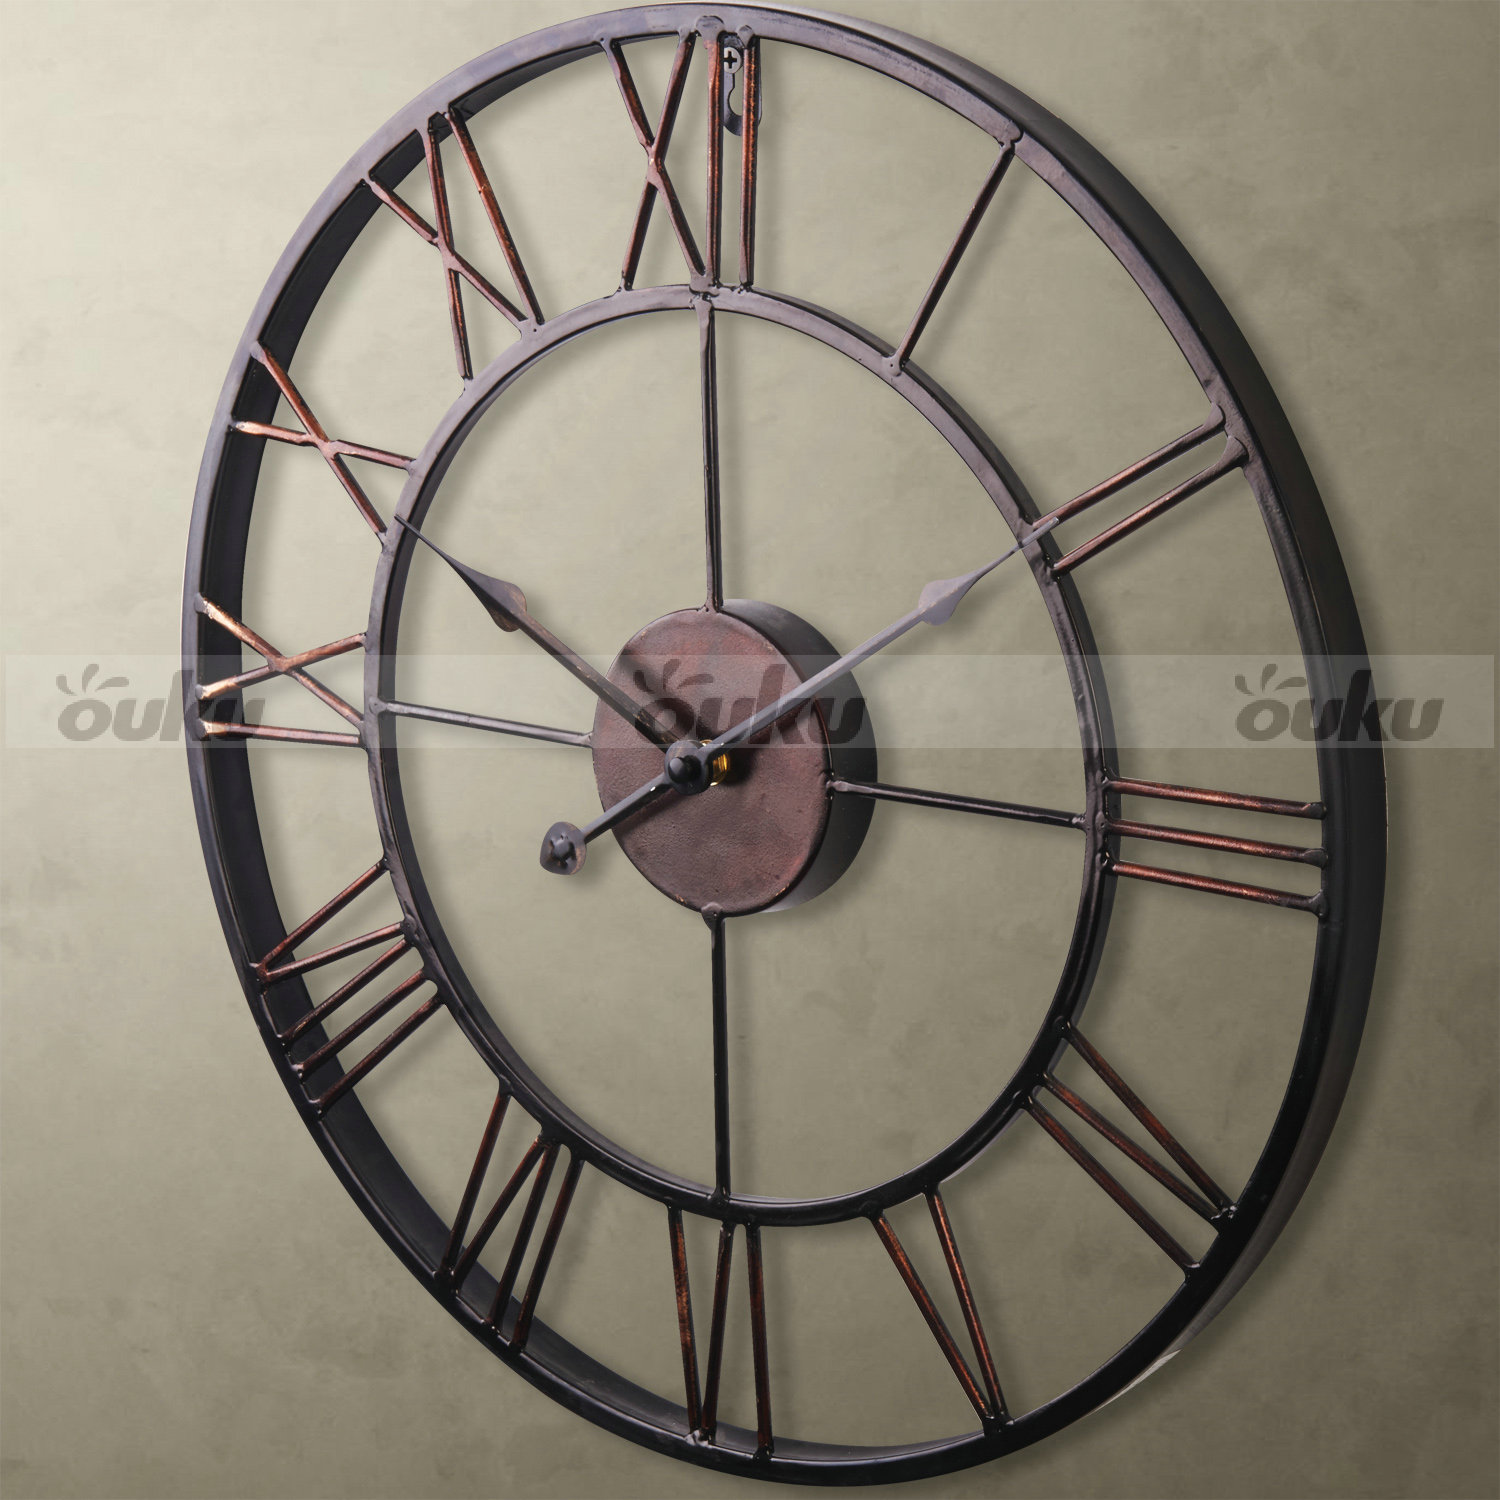 Big Clocks For Wall Hot Sale Extra Large Vintage Style Statement Metal Wall